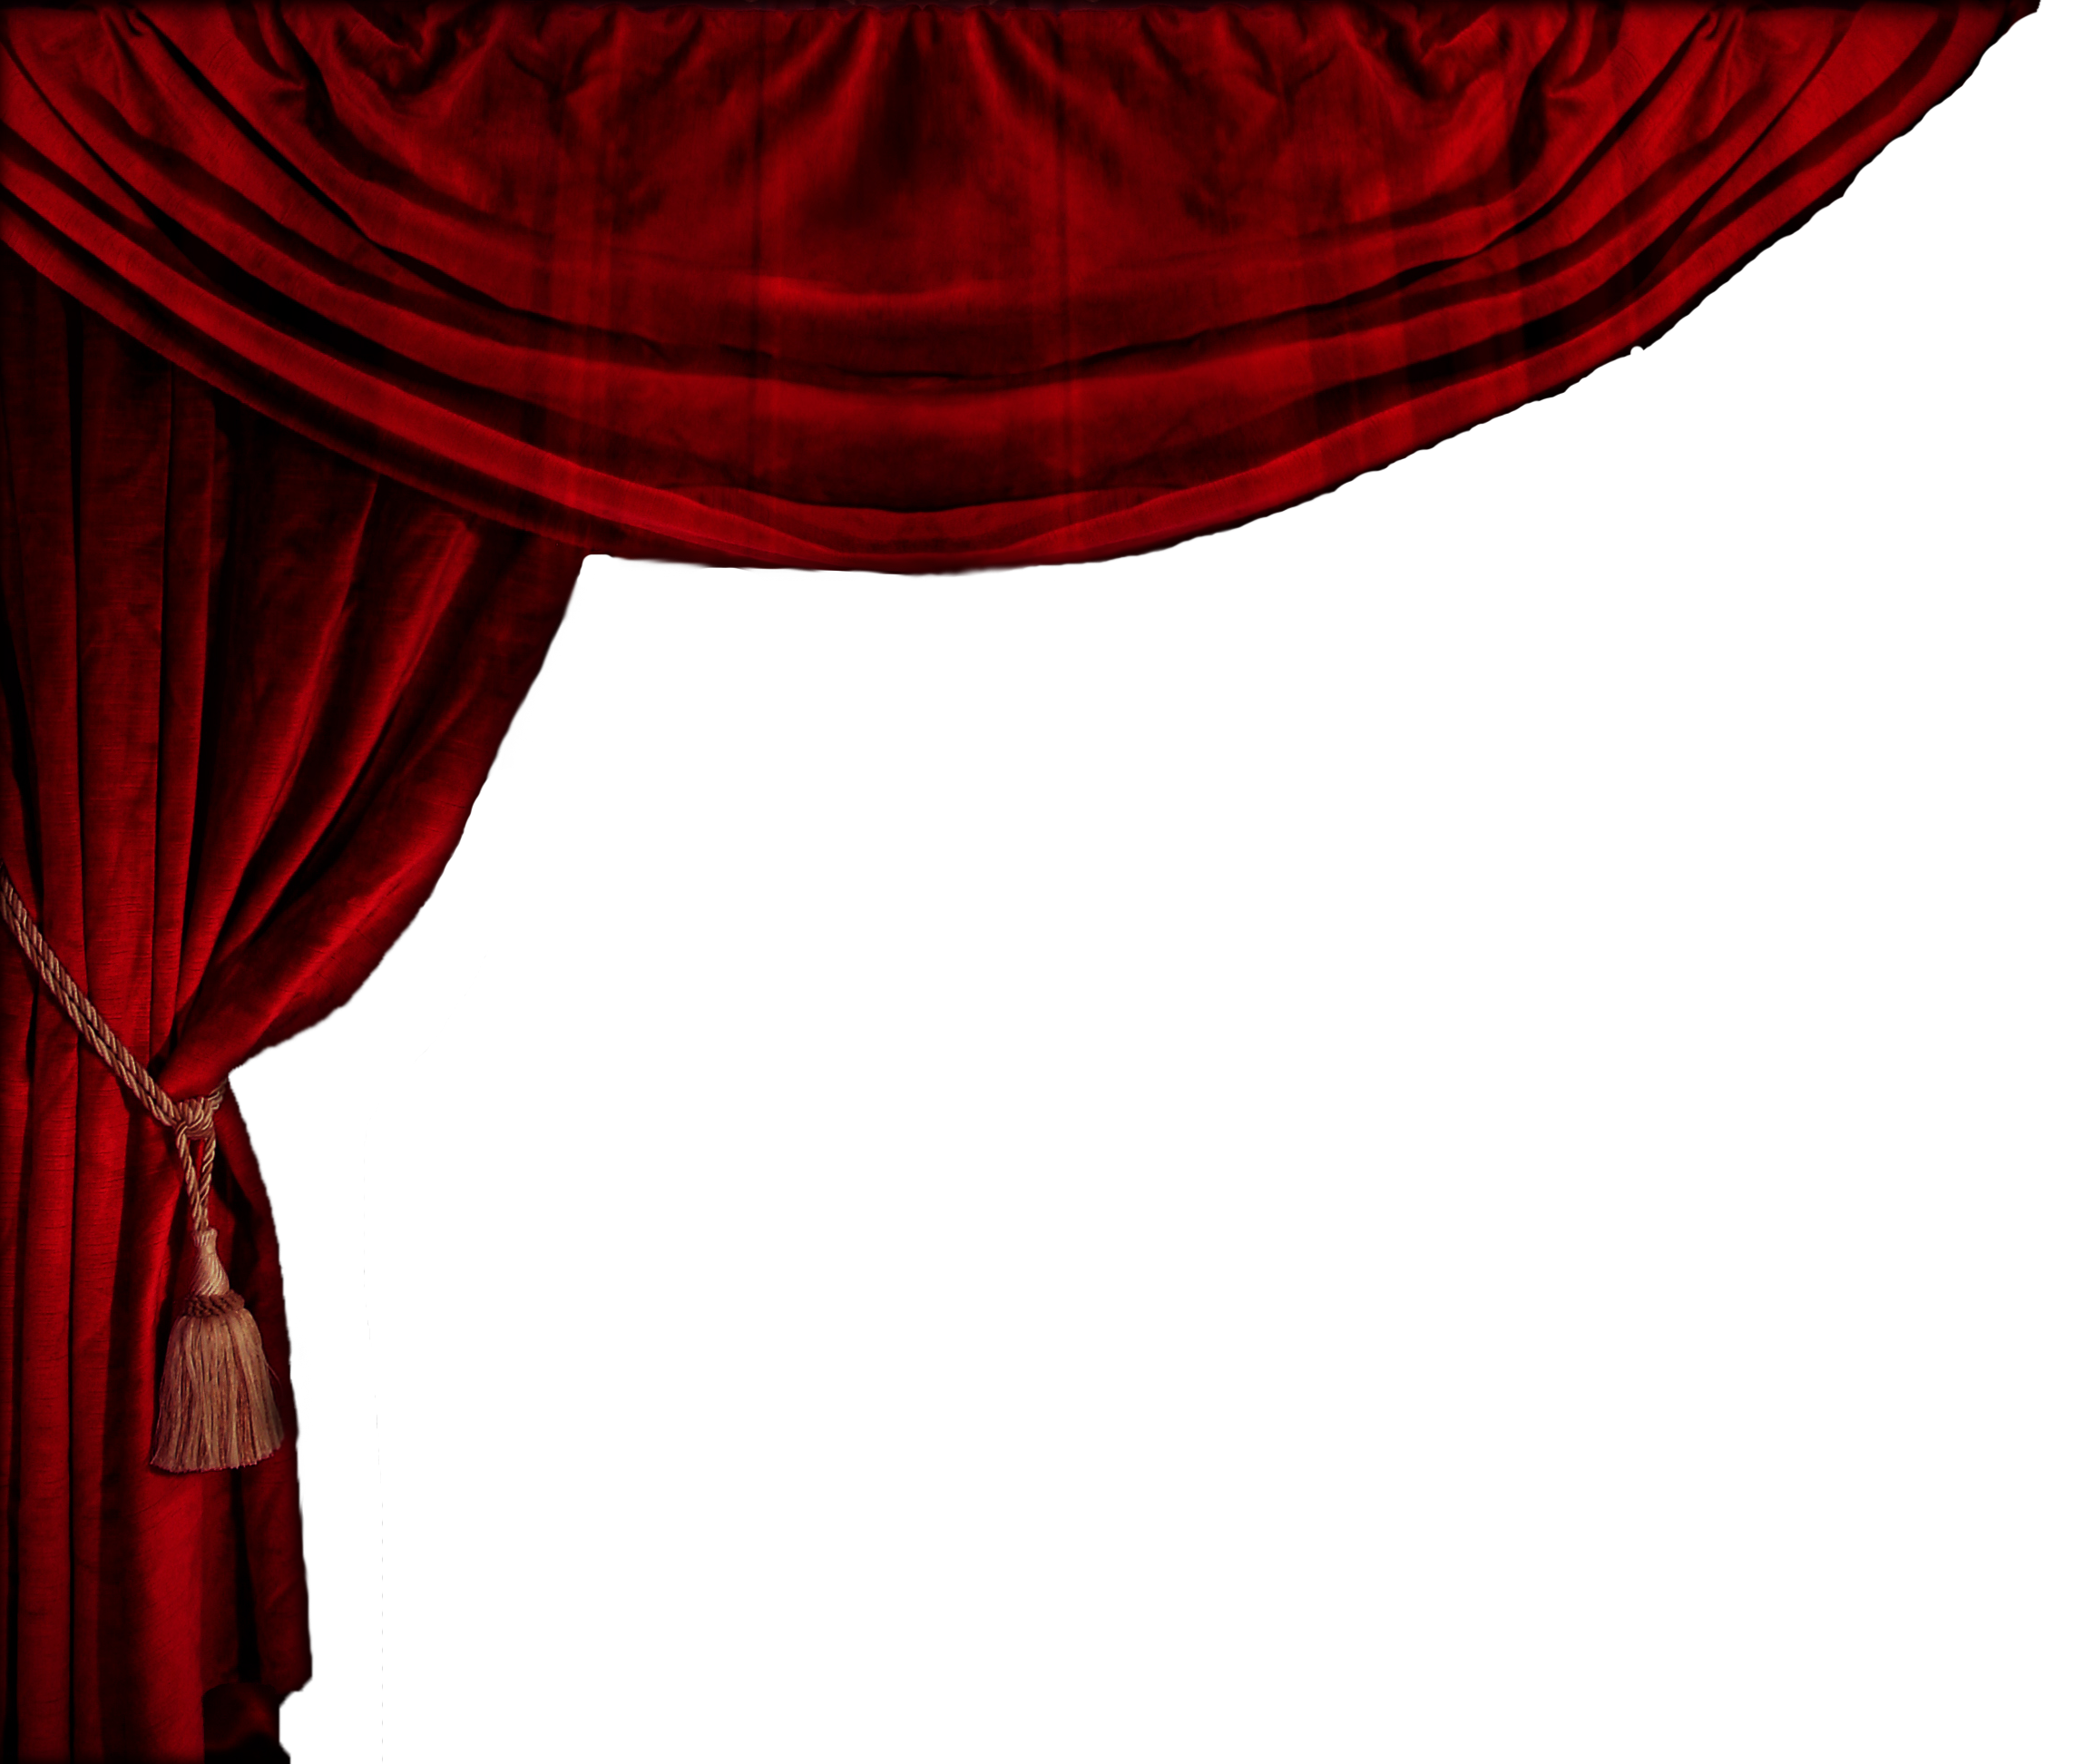 Stage curtain png. Red